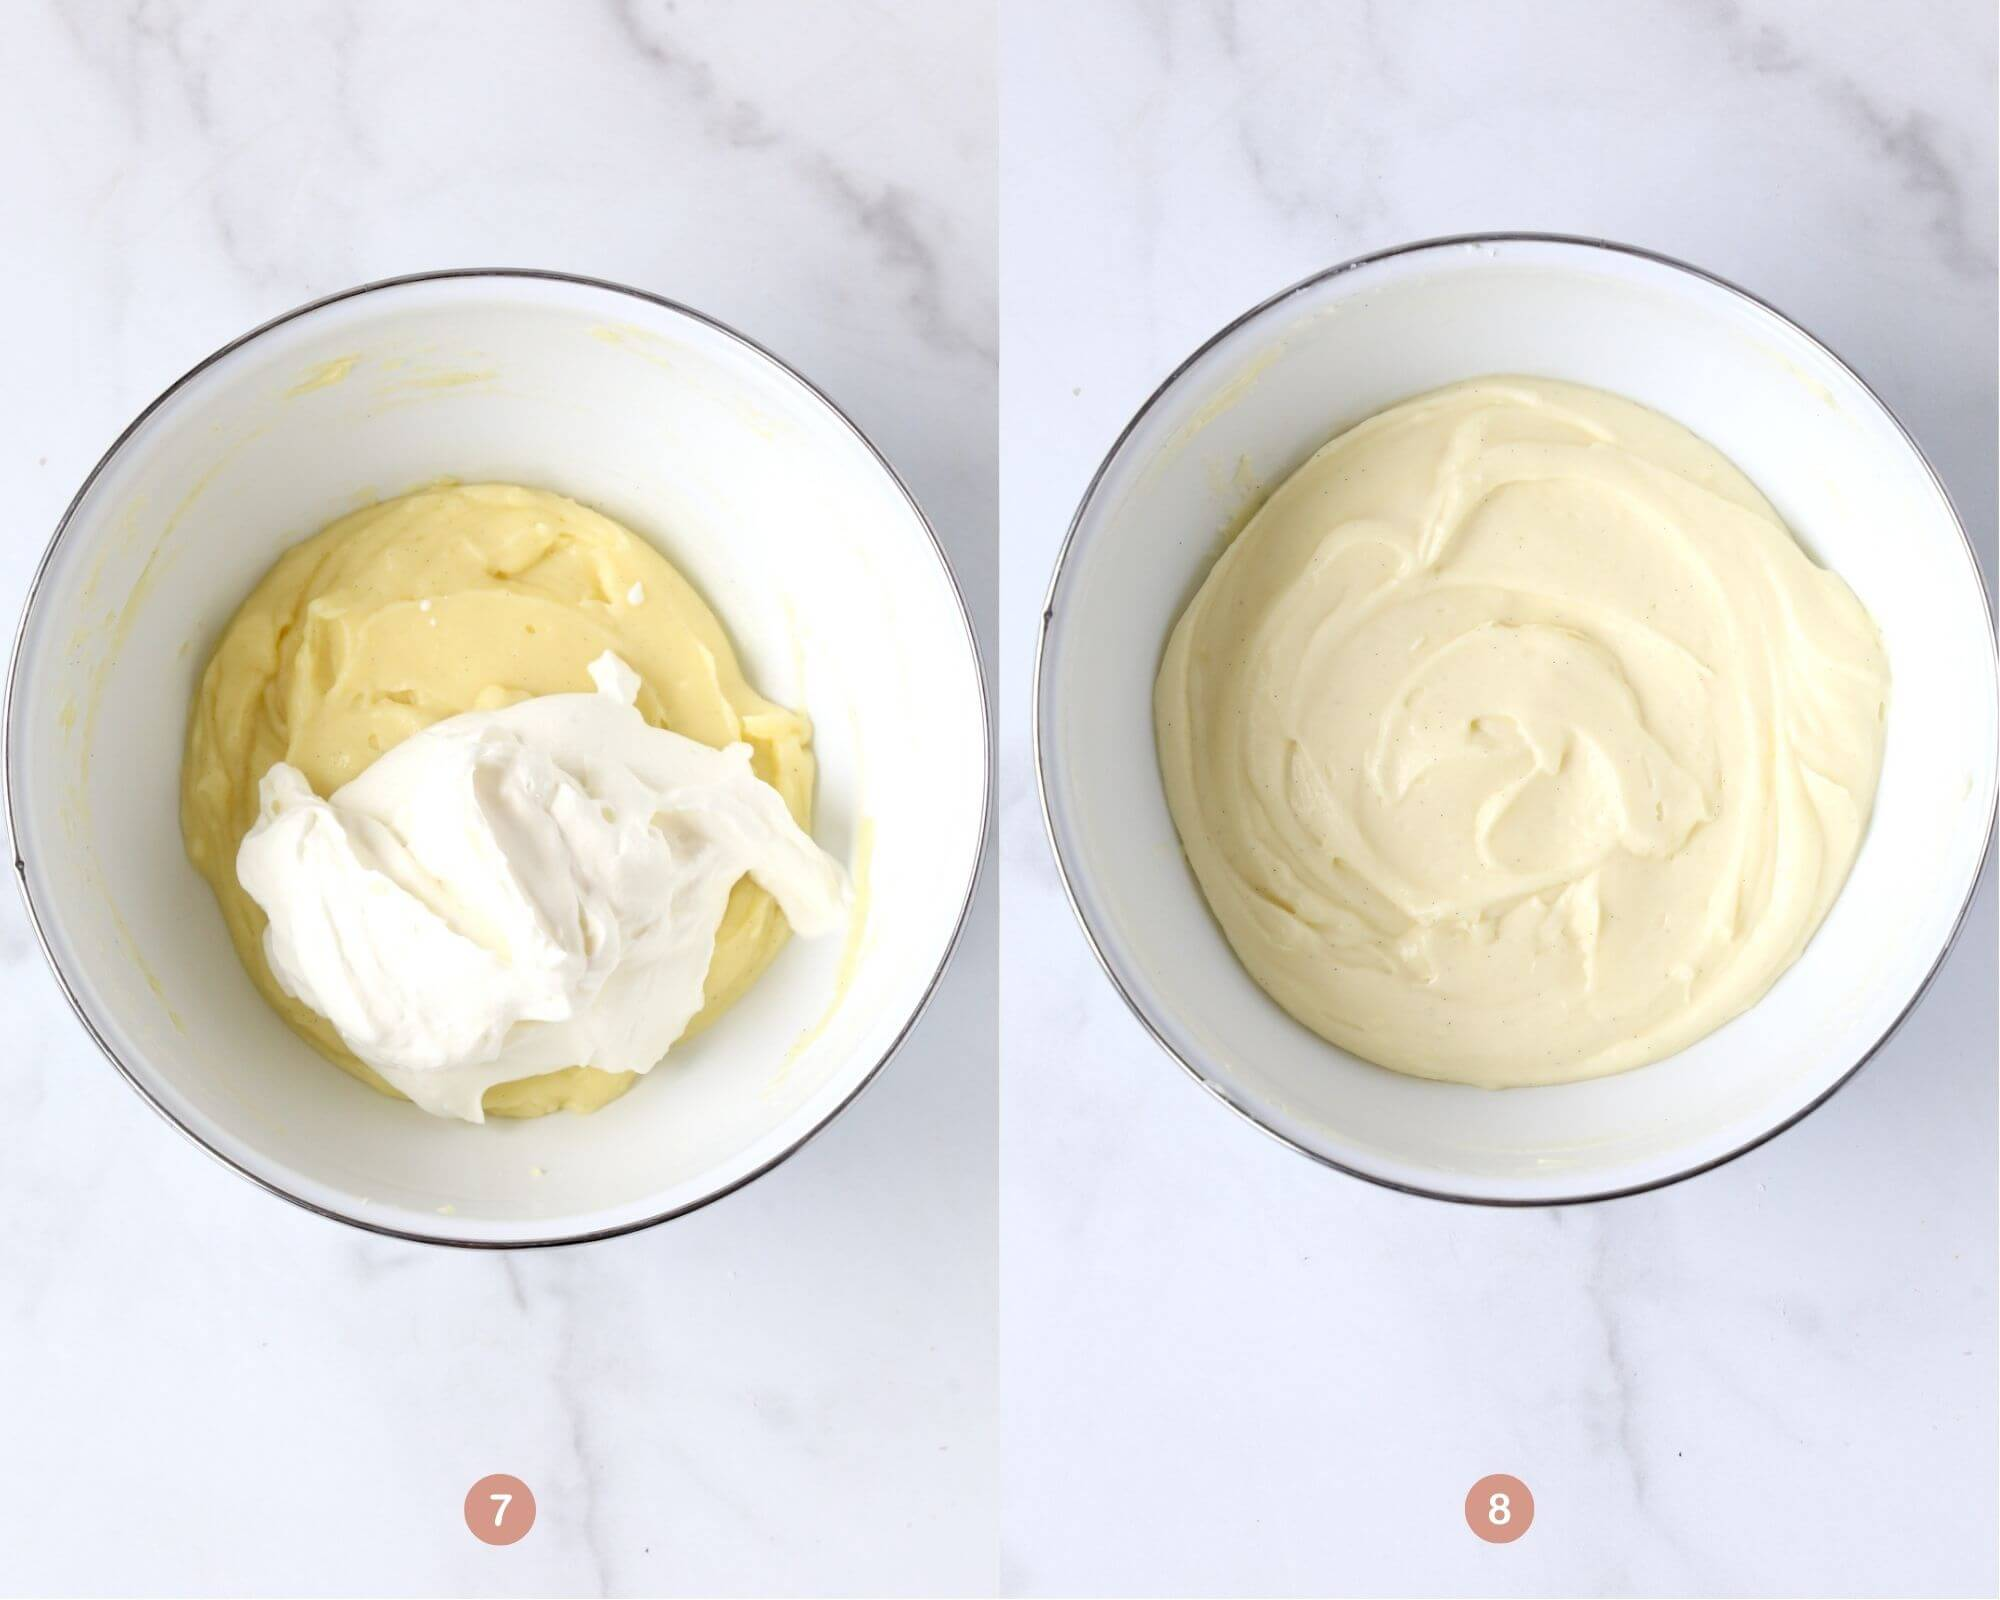 a bowl of vanilla pudding with whipped cream on top next to a bowl with the finished product.